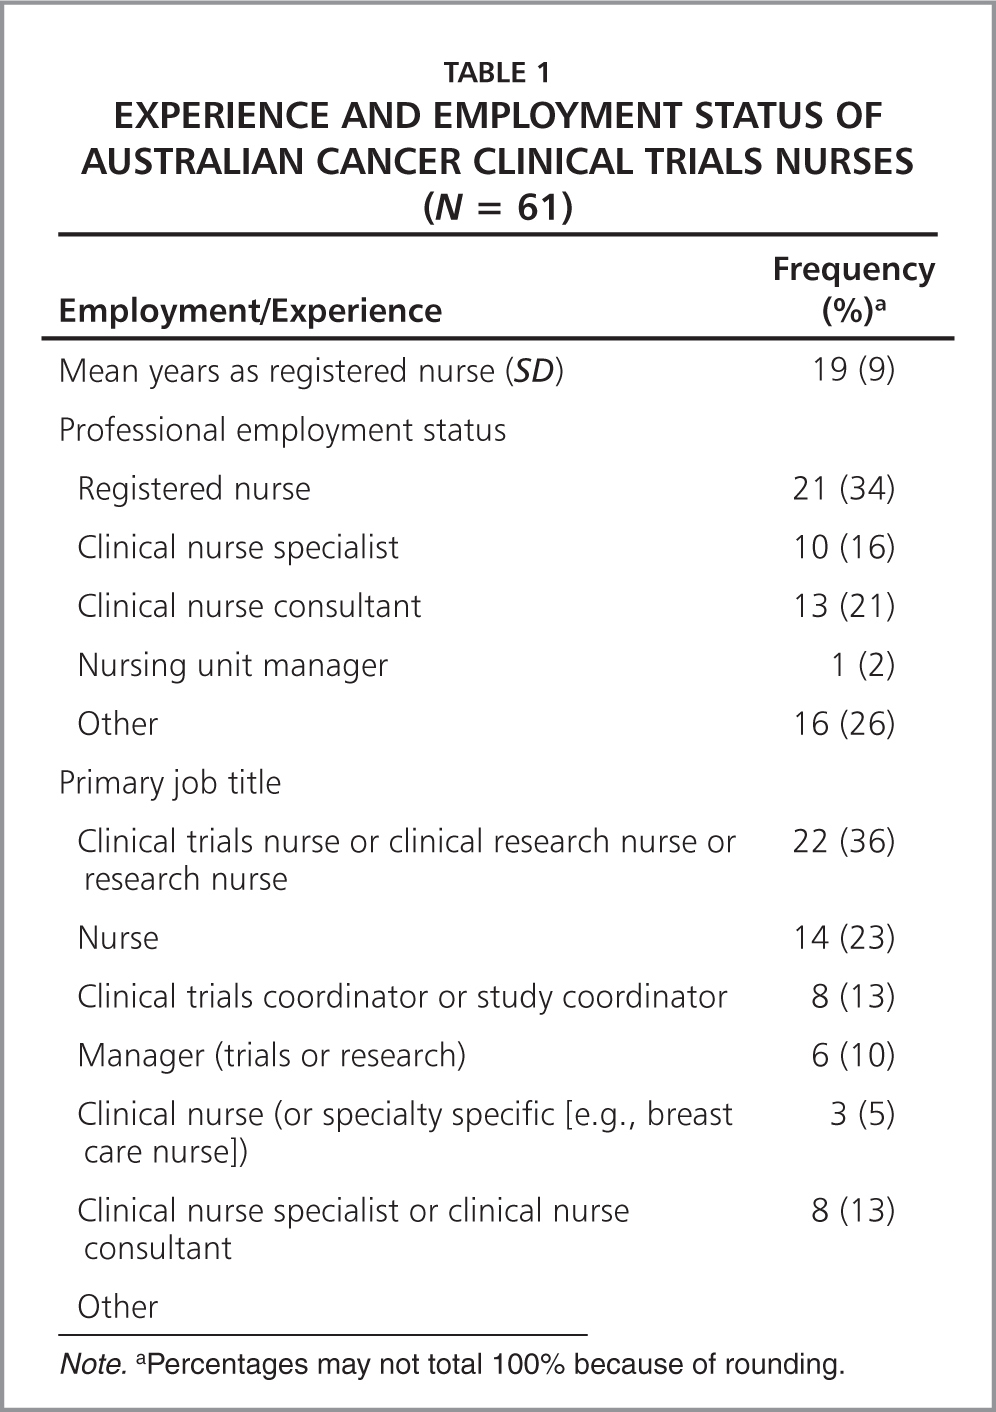 Experience and Employment Status of Australian Cancer Clinical Trials Nurses (N = 61)